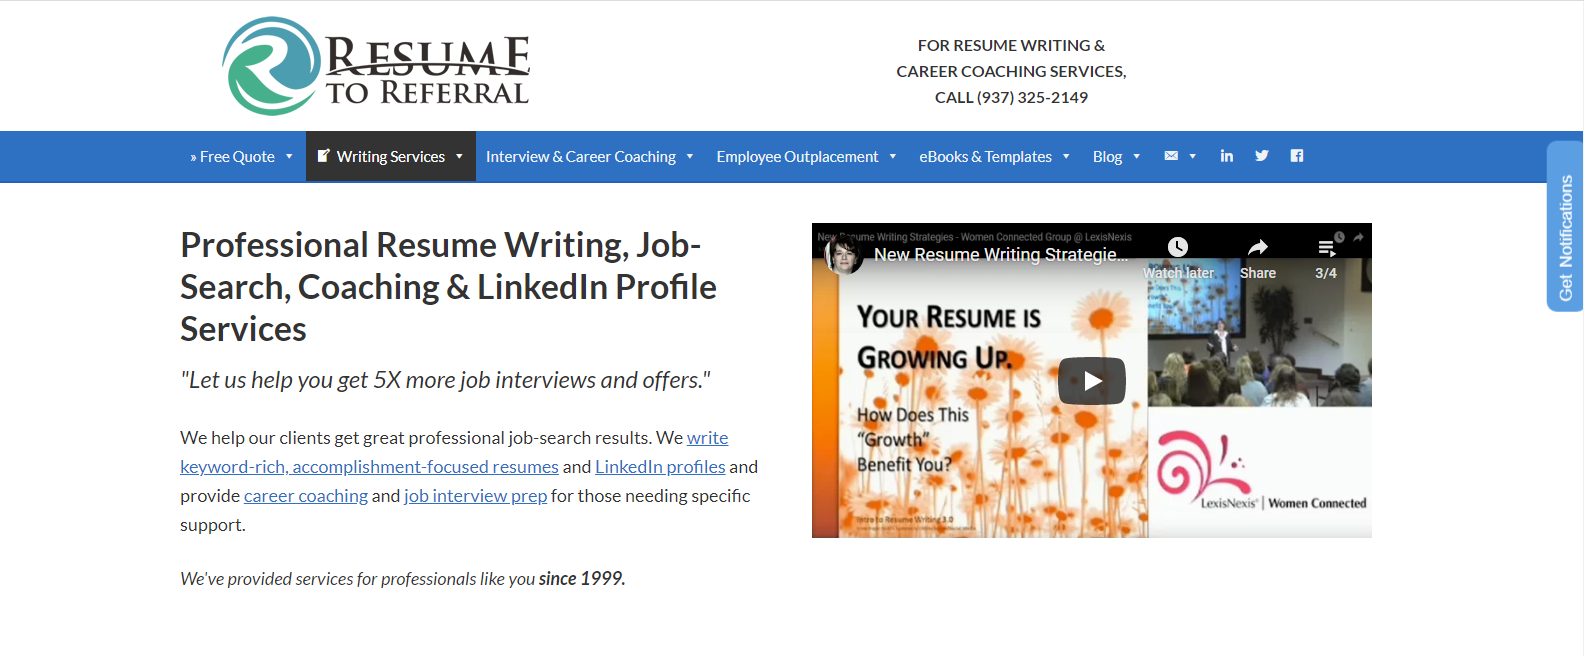 10 Best Military Resume Writing Services in 2021 – Screenshot of Resume to Referral Homepage